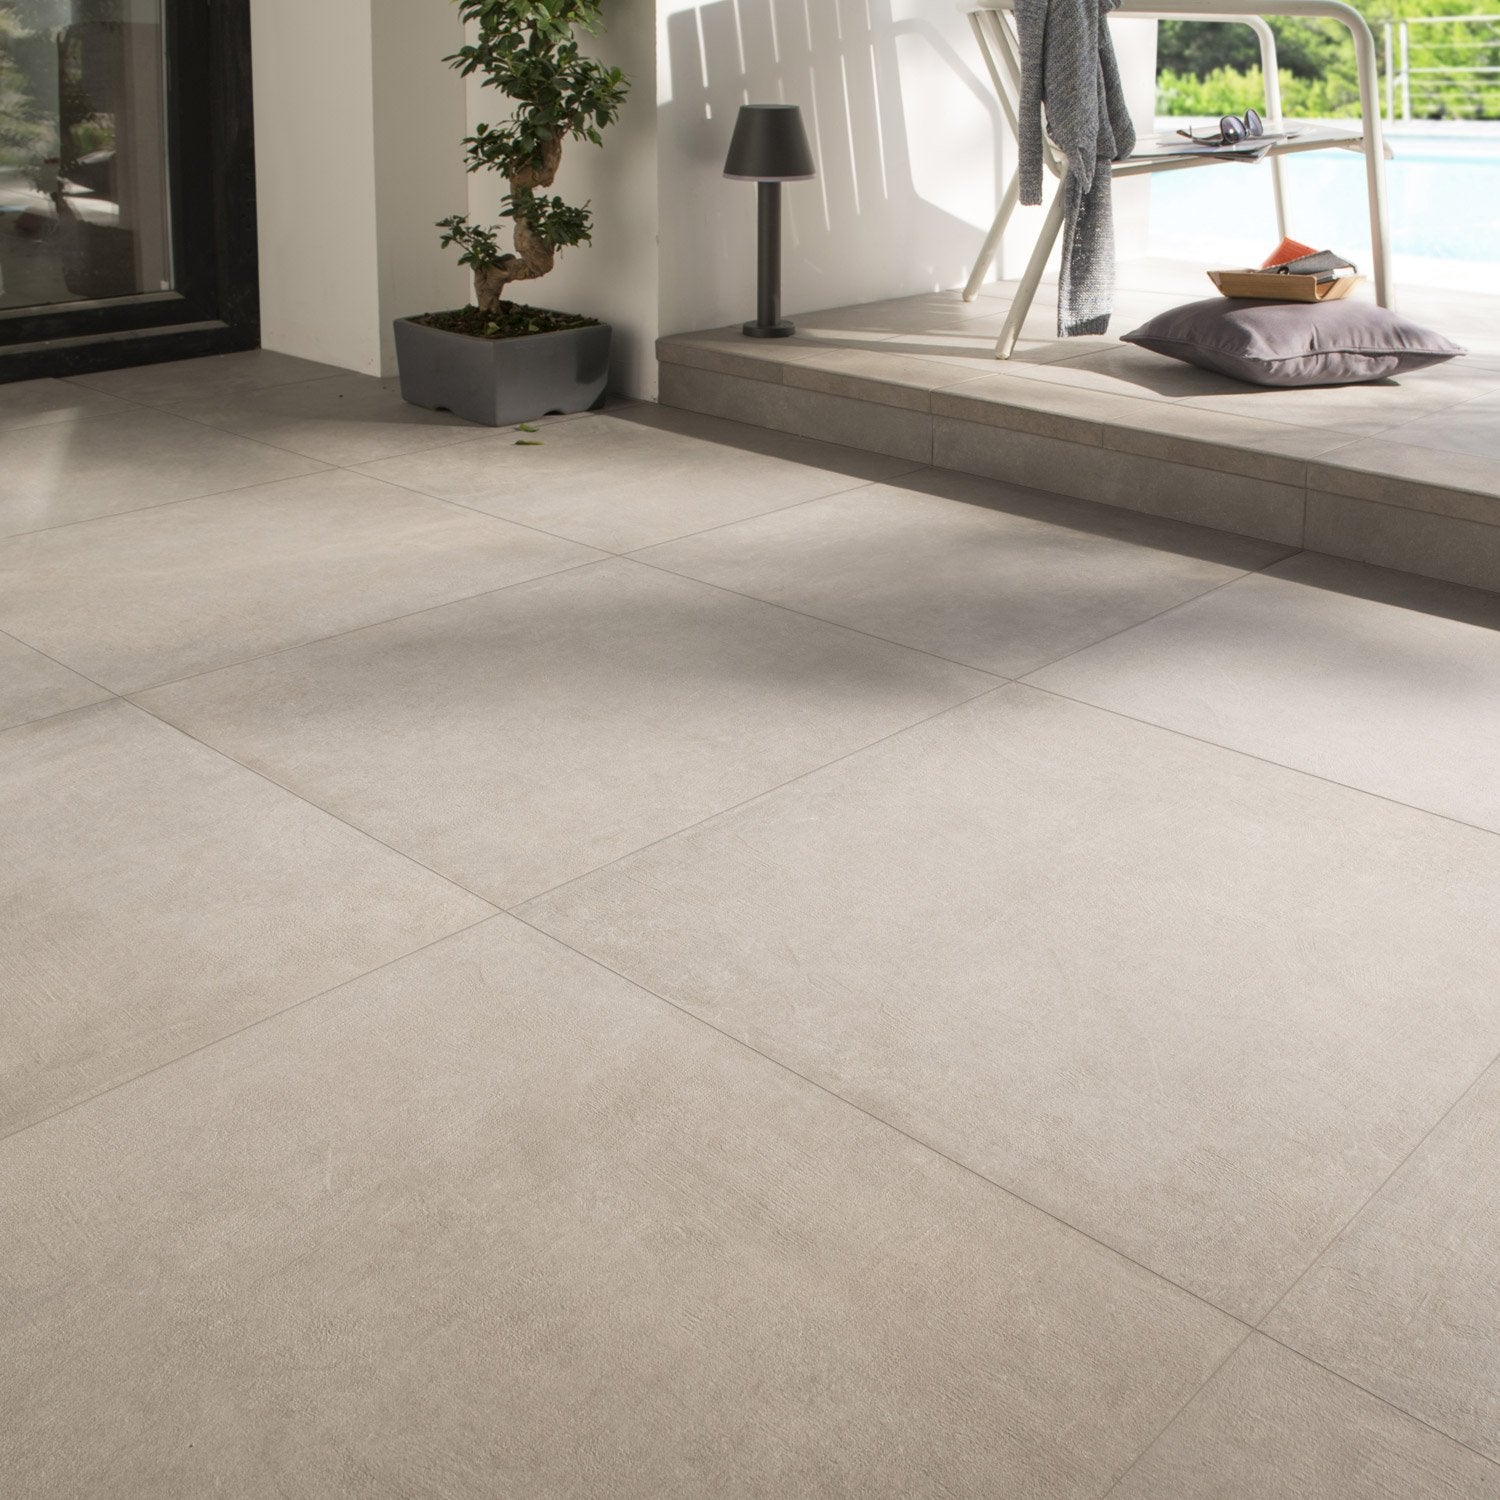 Carrelage sol gris effet b ton houston x cm for Carrelage exterieur 60x60